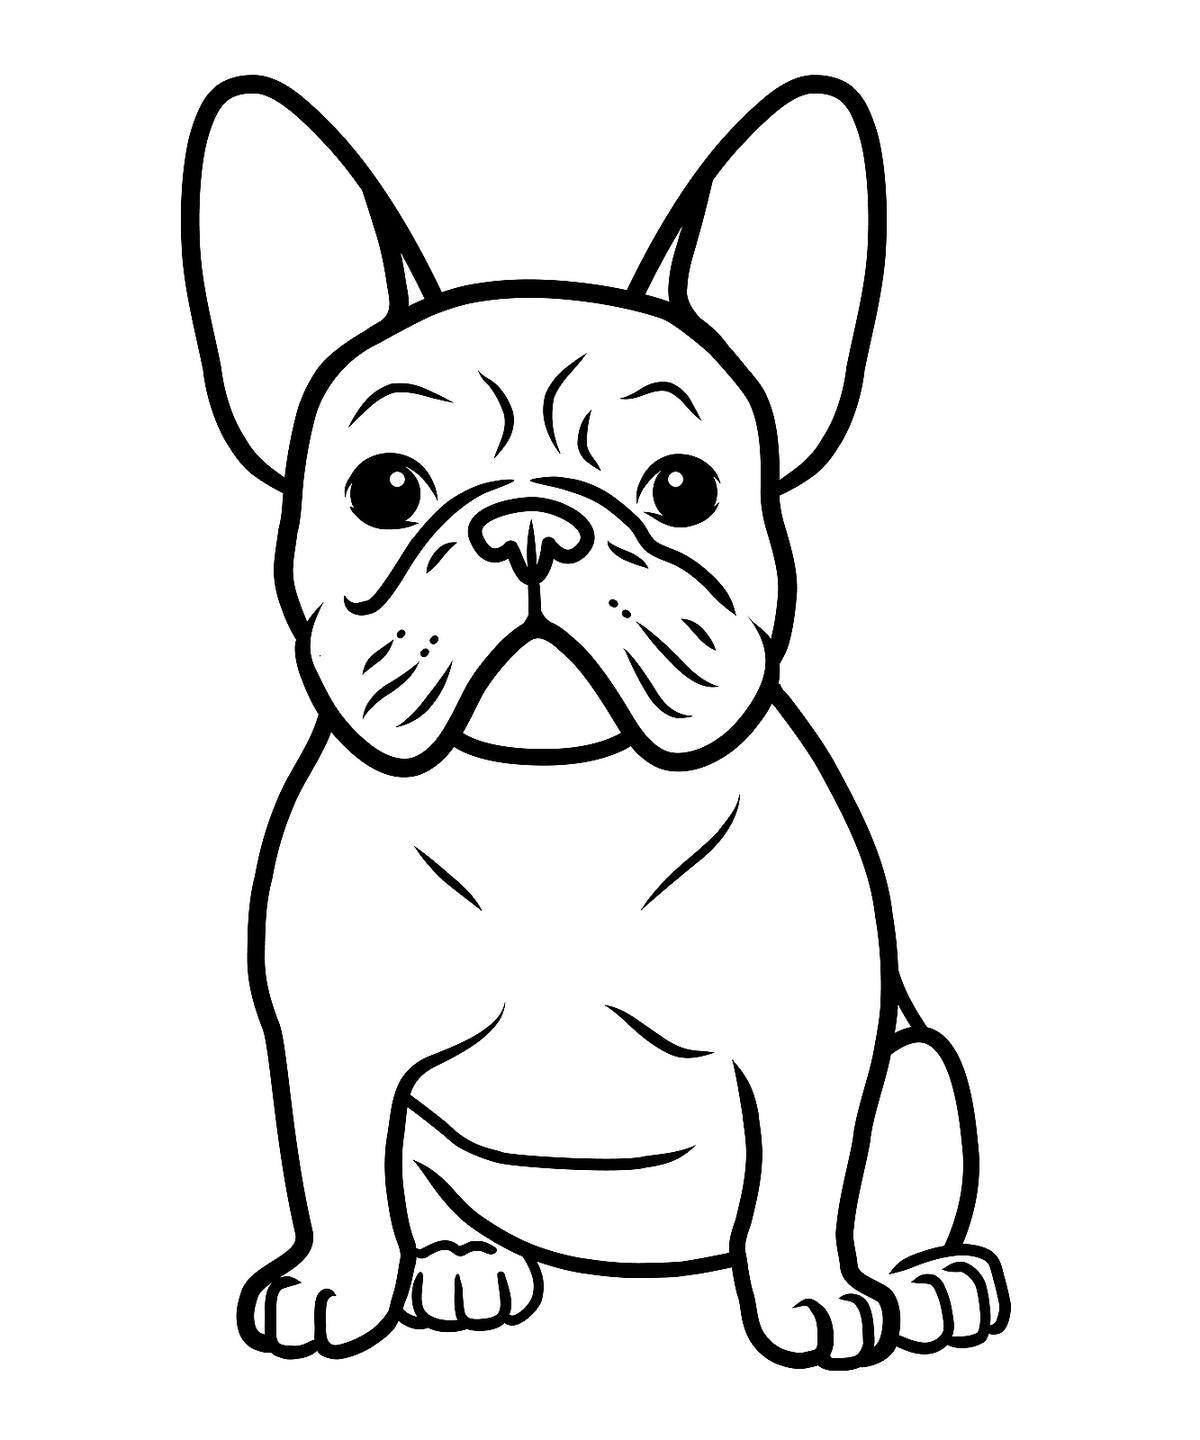 dog color page the best free direct coloring page images download from dog color page